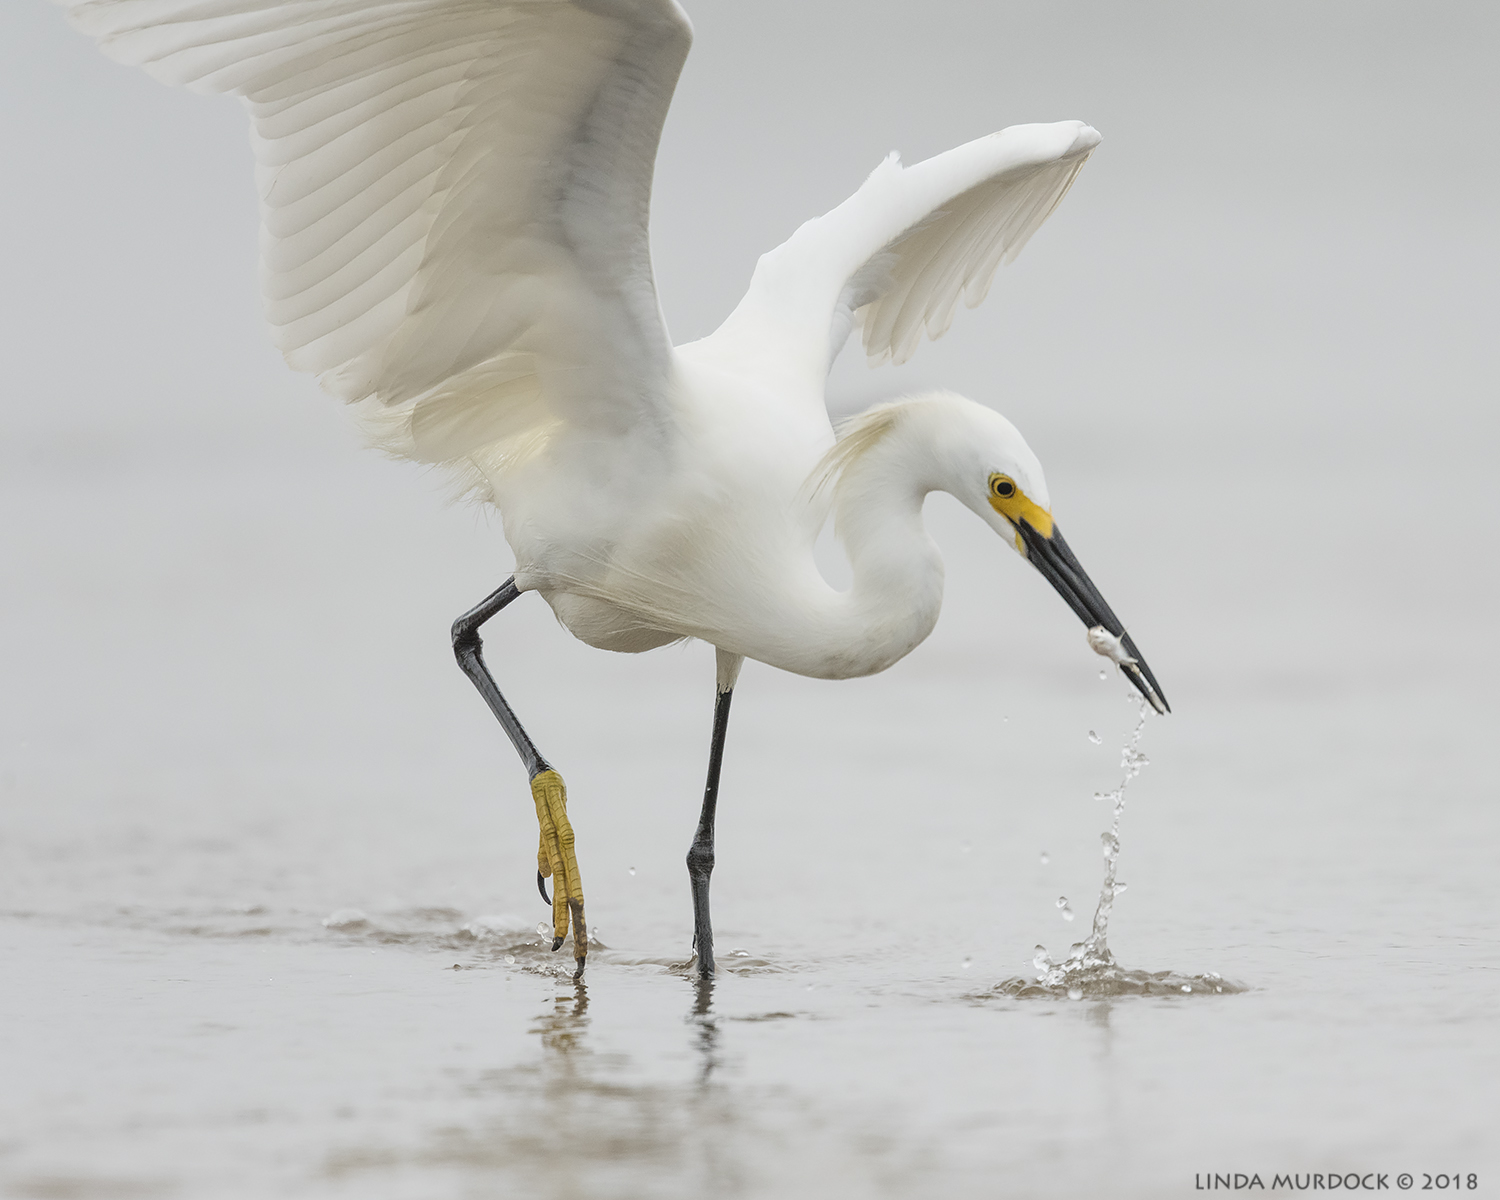 Snowy Egret who must have been hanging out with a Reddish  Nikon D810 with NIKKOR 500mm f/4E VR + Nikon 1.7x TC ~ 1/2000  sec f/7.1 ISO 2000; tripod sitting in the mud